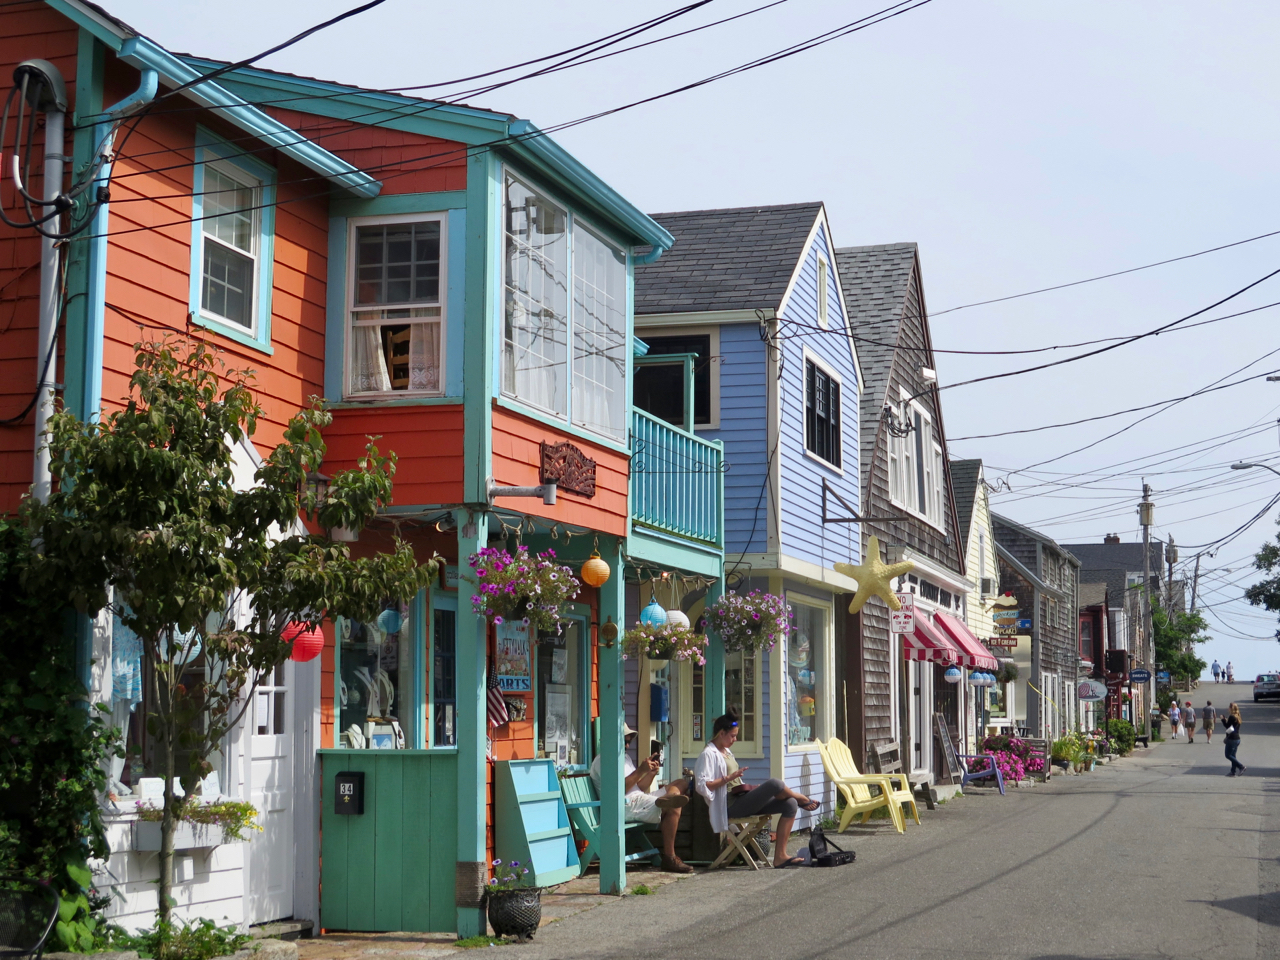 The arts colony on Bearskin Neck in Rockport Mass is just minutes from this traditiona New England seaside inn.